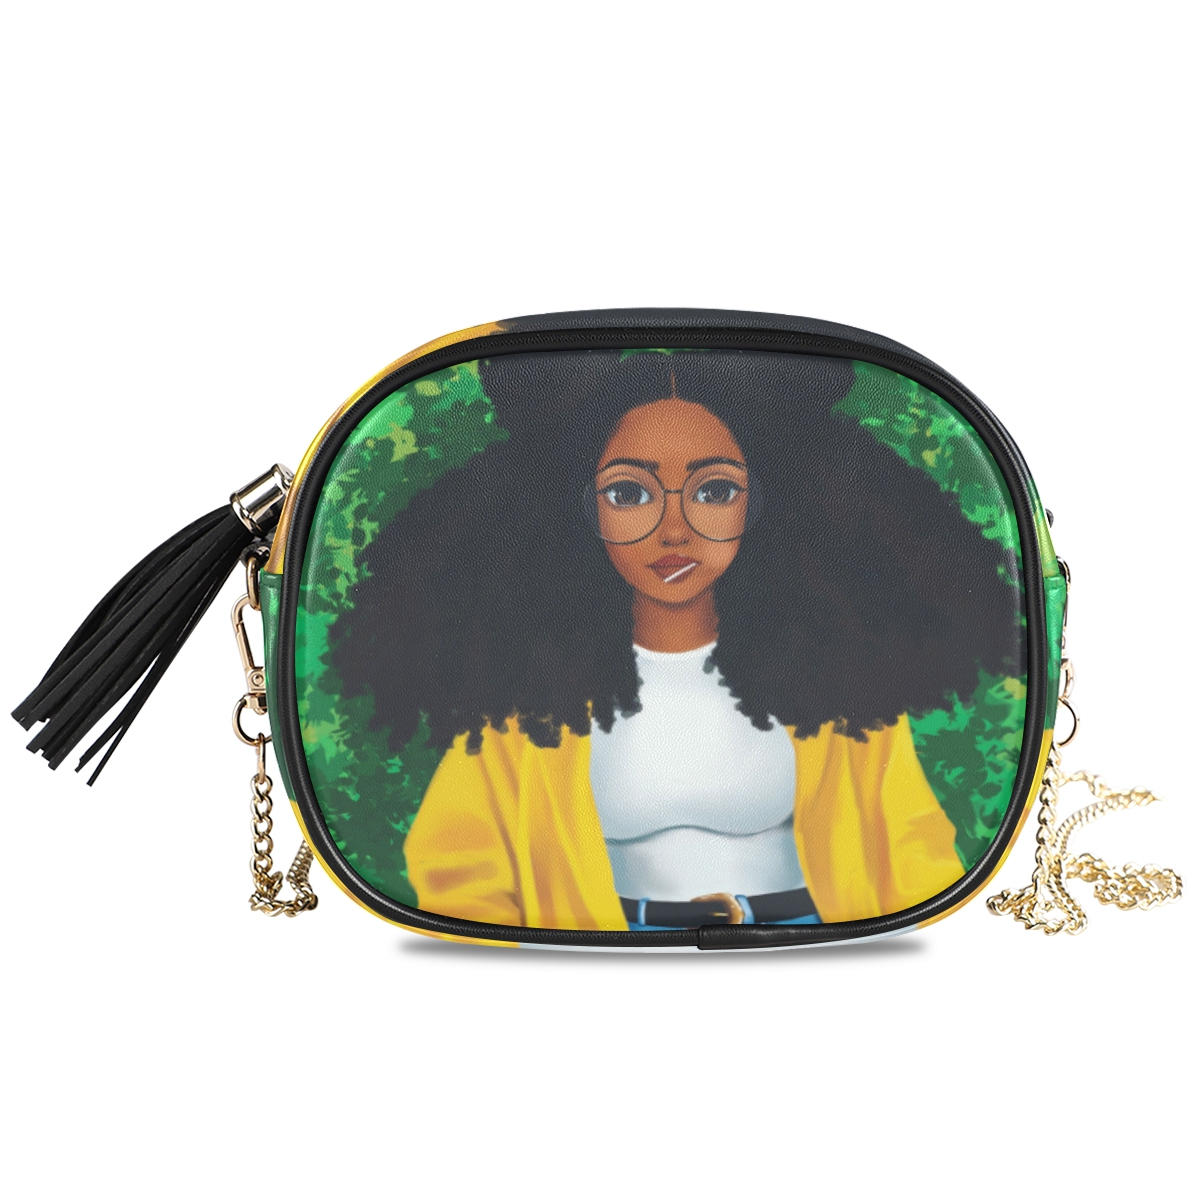 New Shoulder crossbody bag women bags 2020 PU Leather Chain bags Afro Girls black Women Messenger Bag Small Square purse Bags